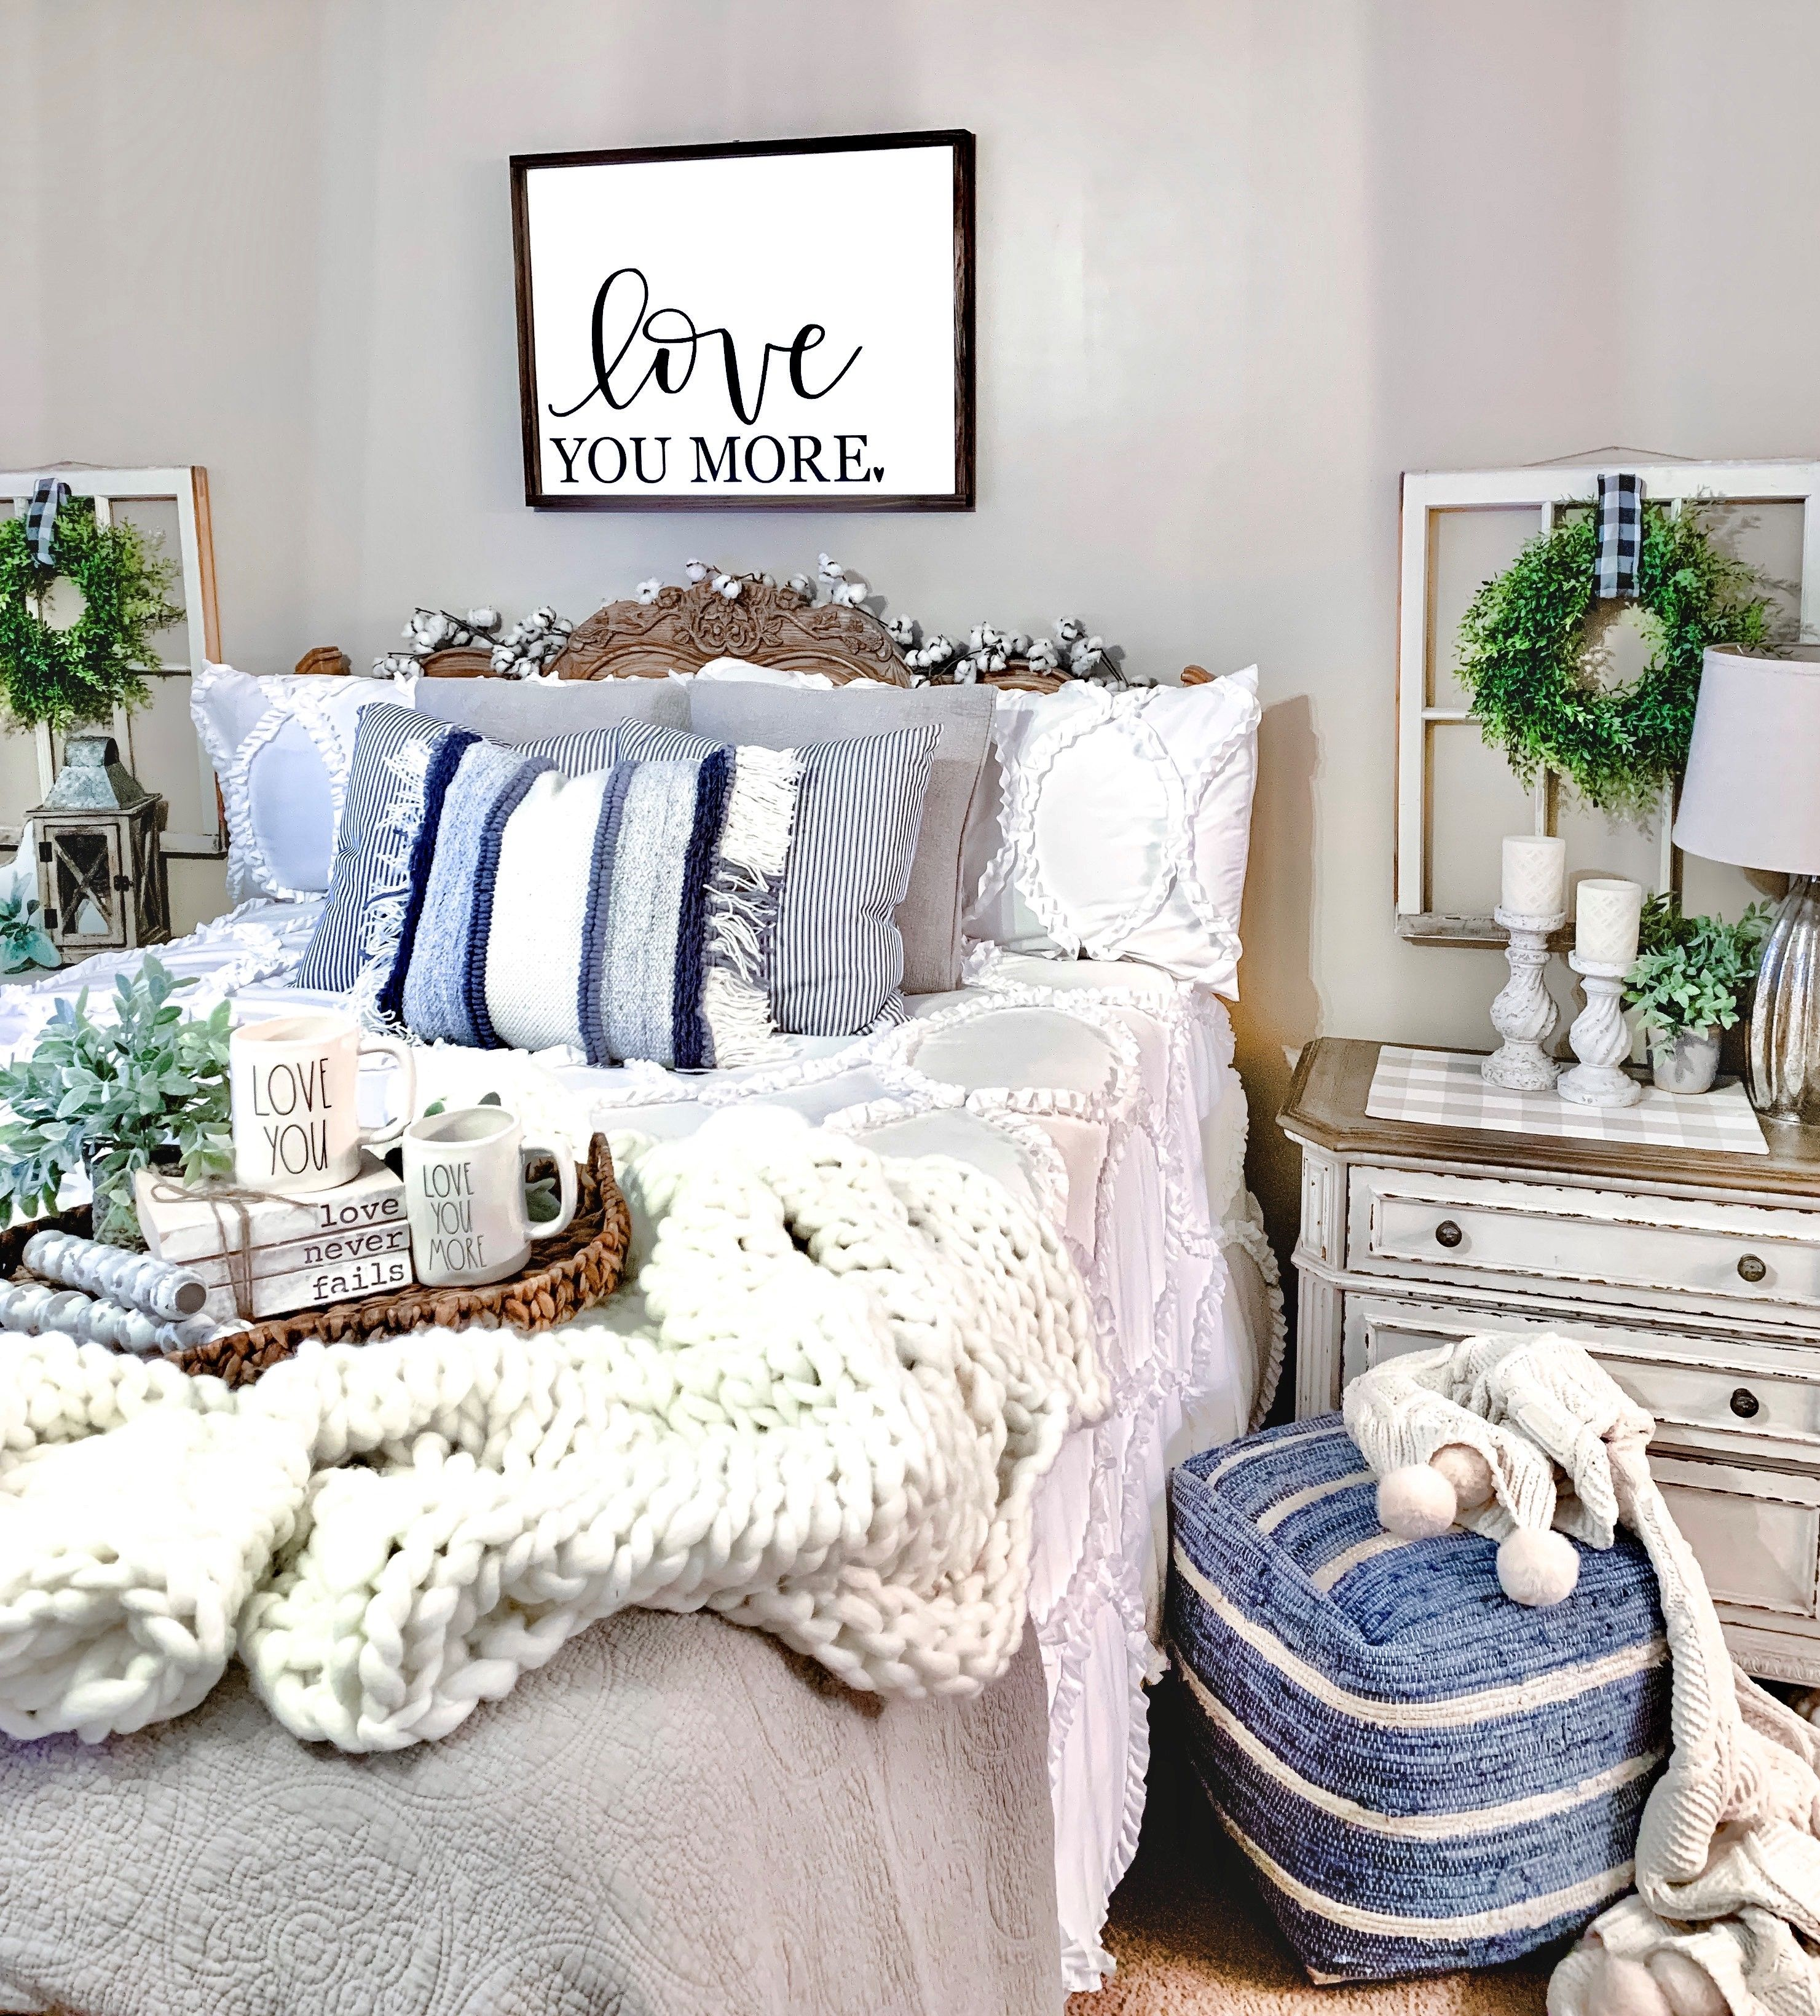 We Re Bringing You Blue Accents And Natural Texture For Your Bedroom Decor Inspiration Farm To Table Crea In 2020 Kirkland Home Decor Blue Decor Trending Decor